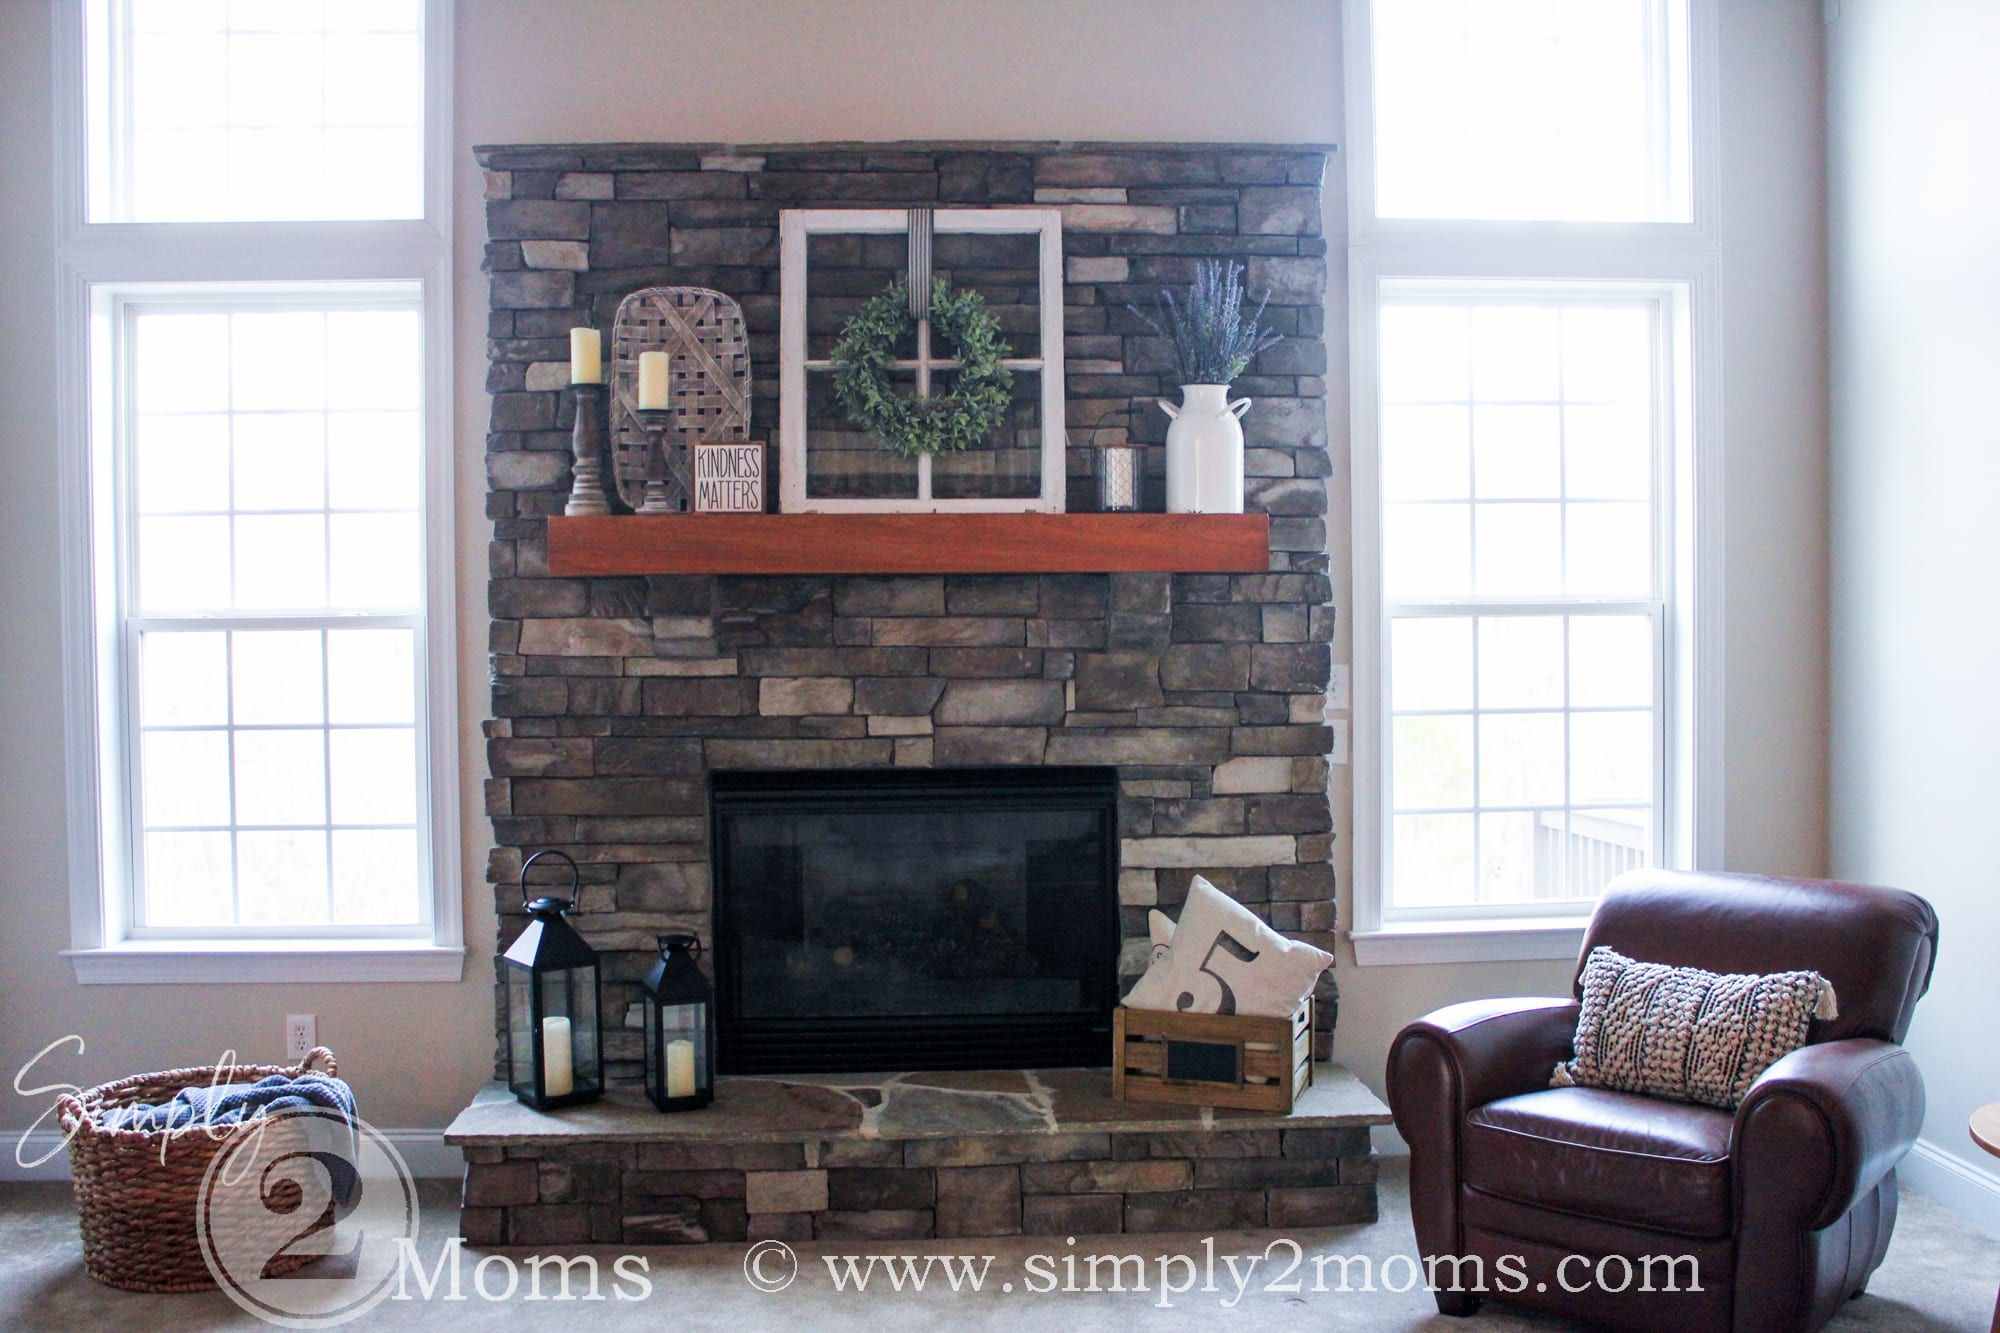 Fireplace Decorating Ideas to take you from Winter through